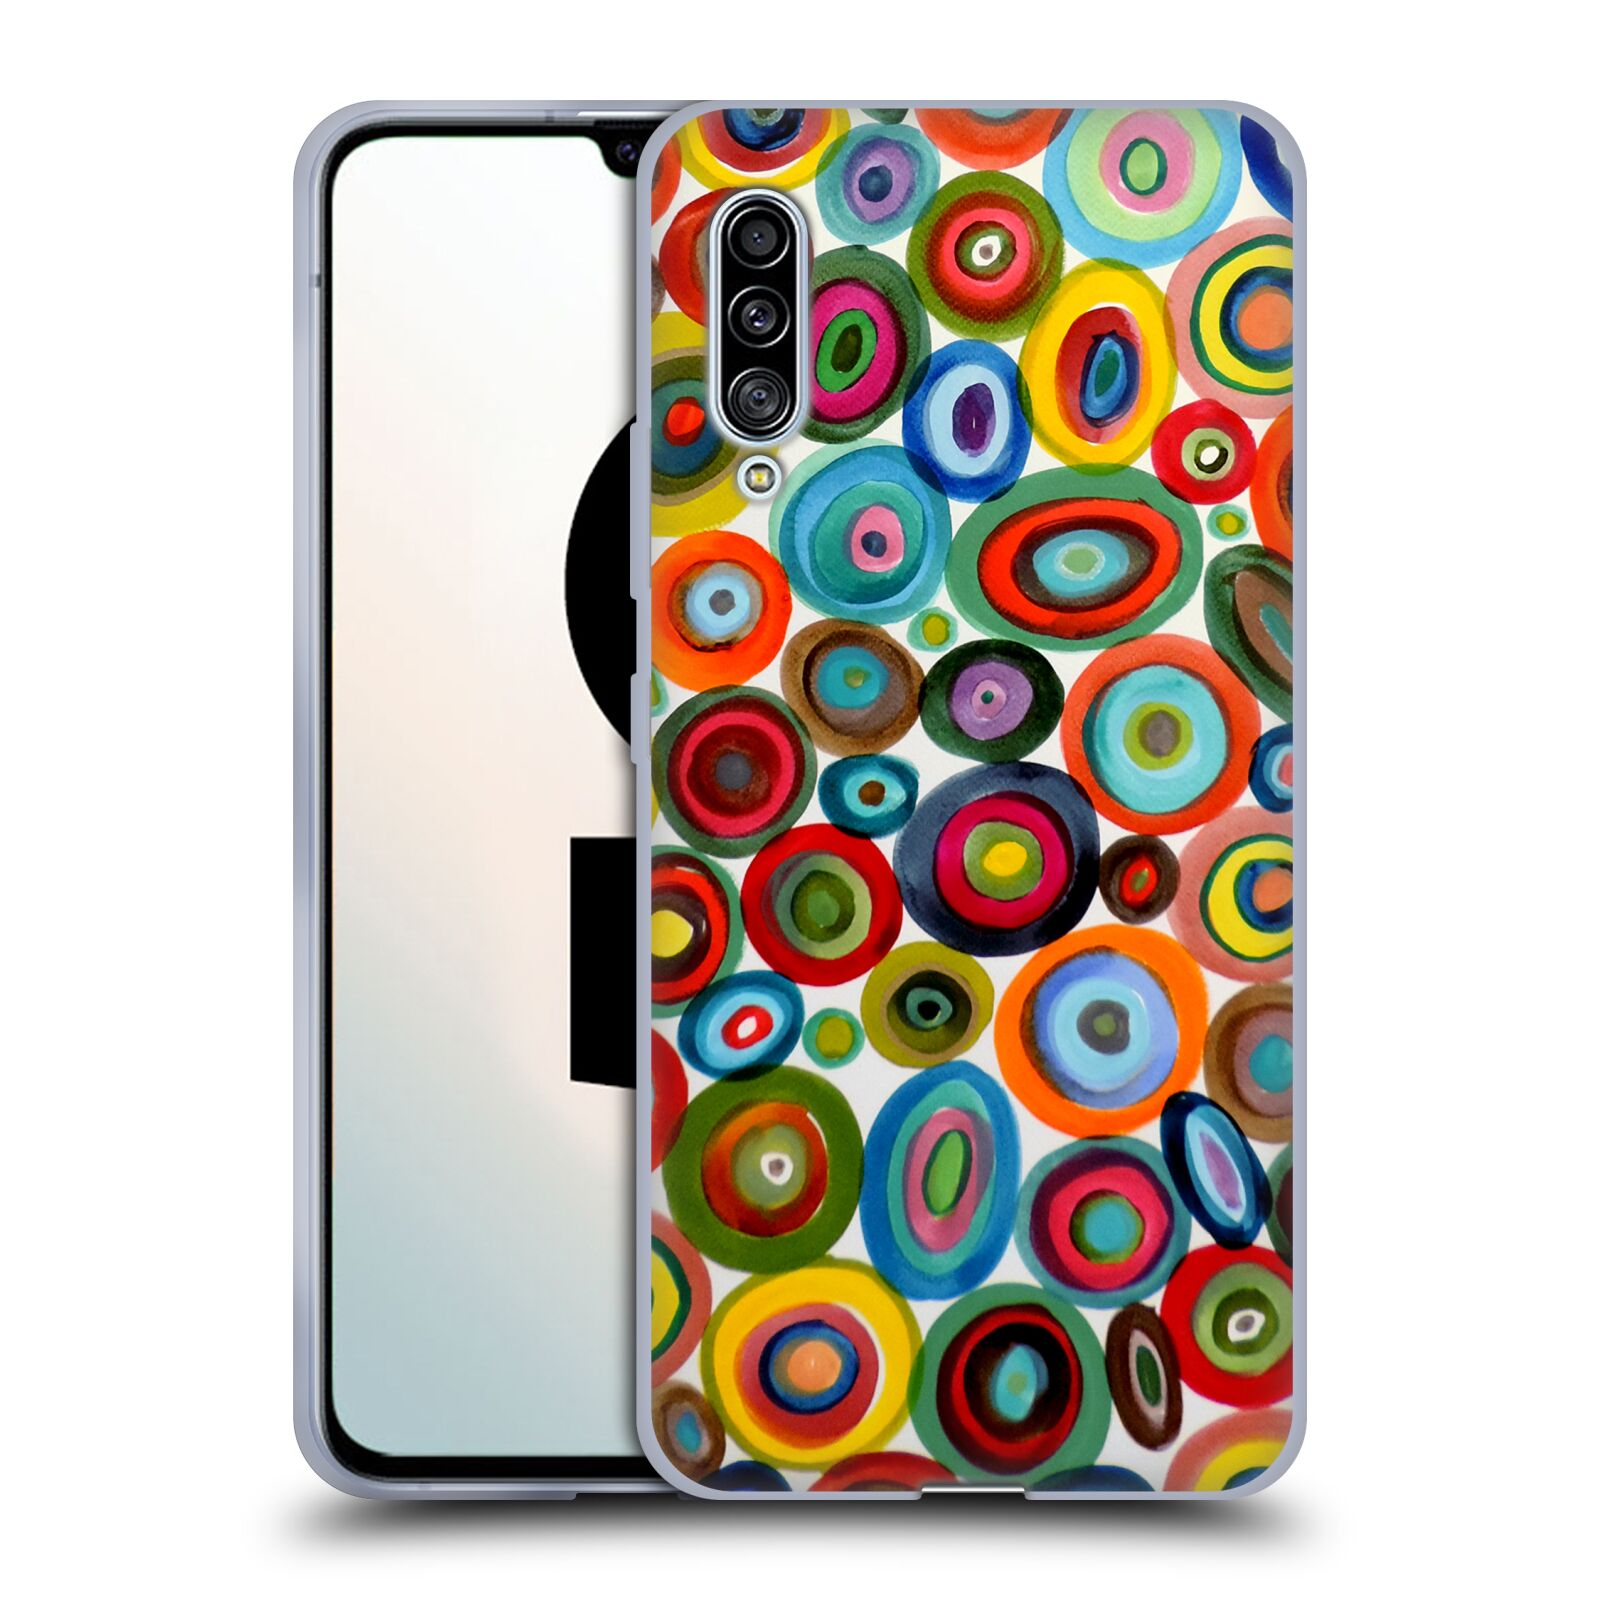 Official Sylvie Demers Abstraction Club Soda Gel Case for Samsung Galaxy A90 5G (2019)